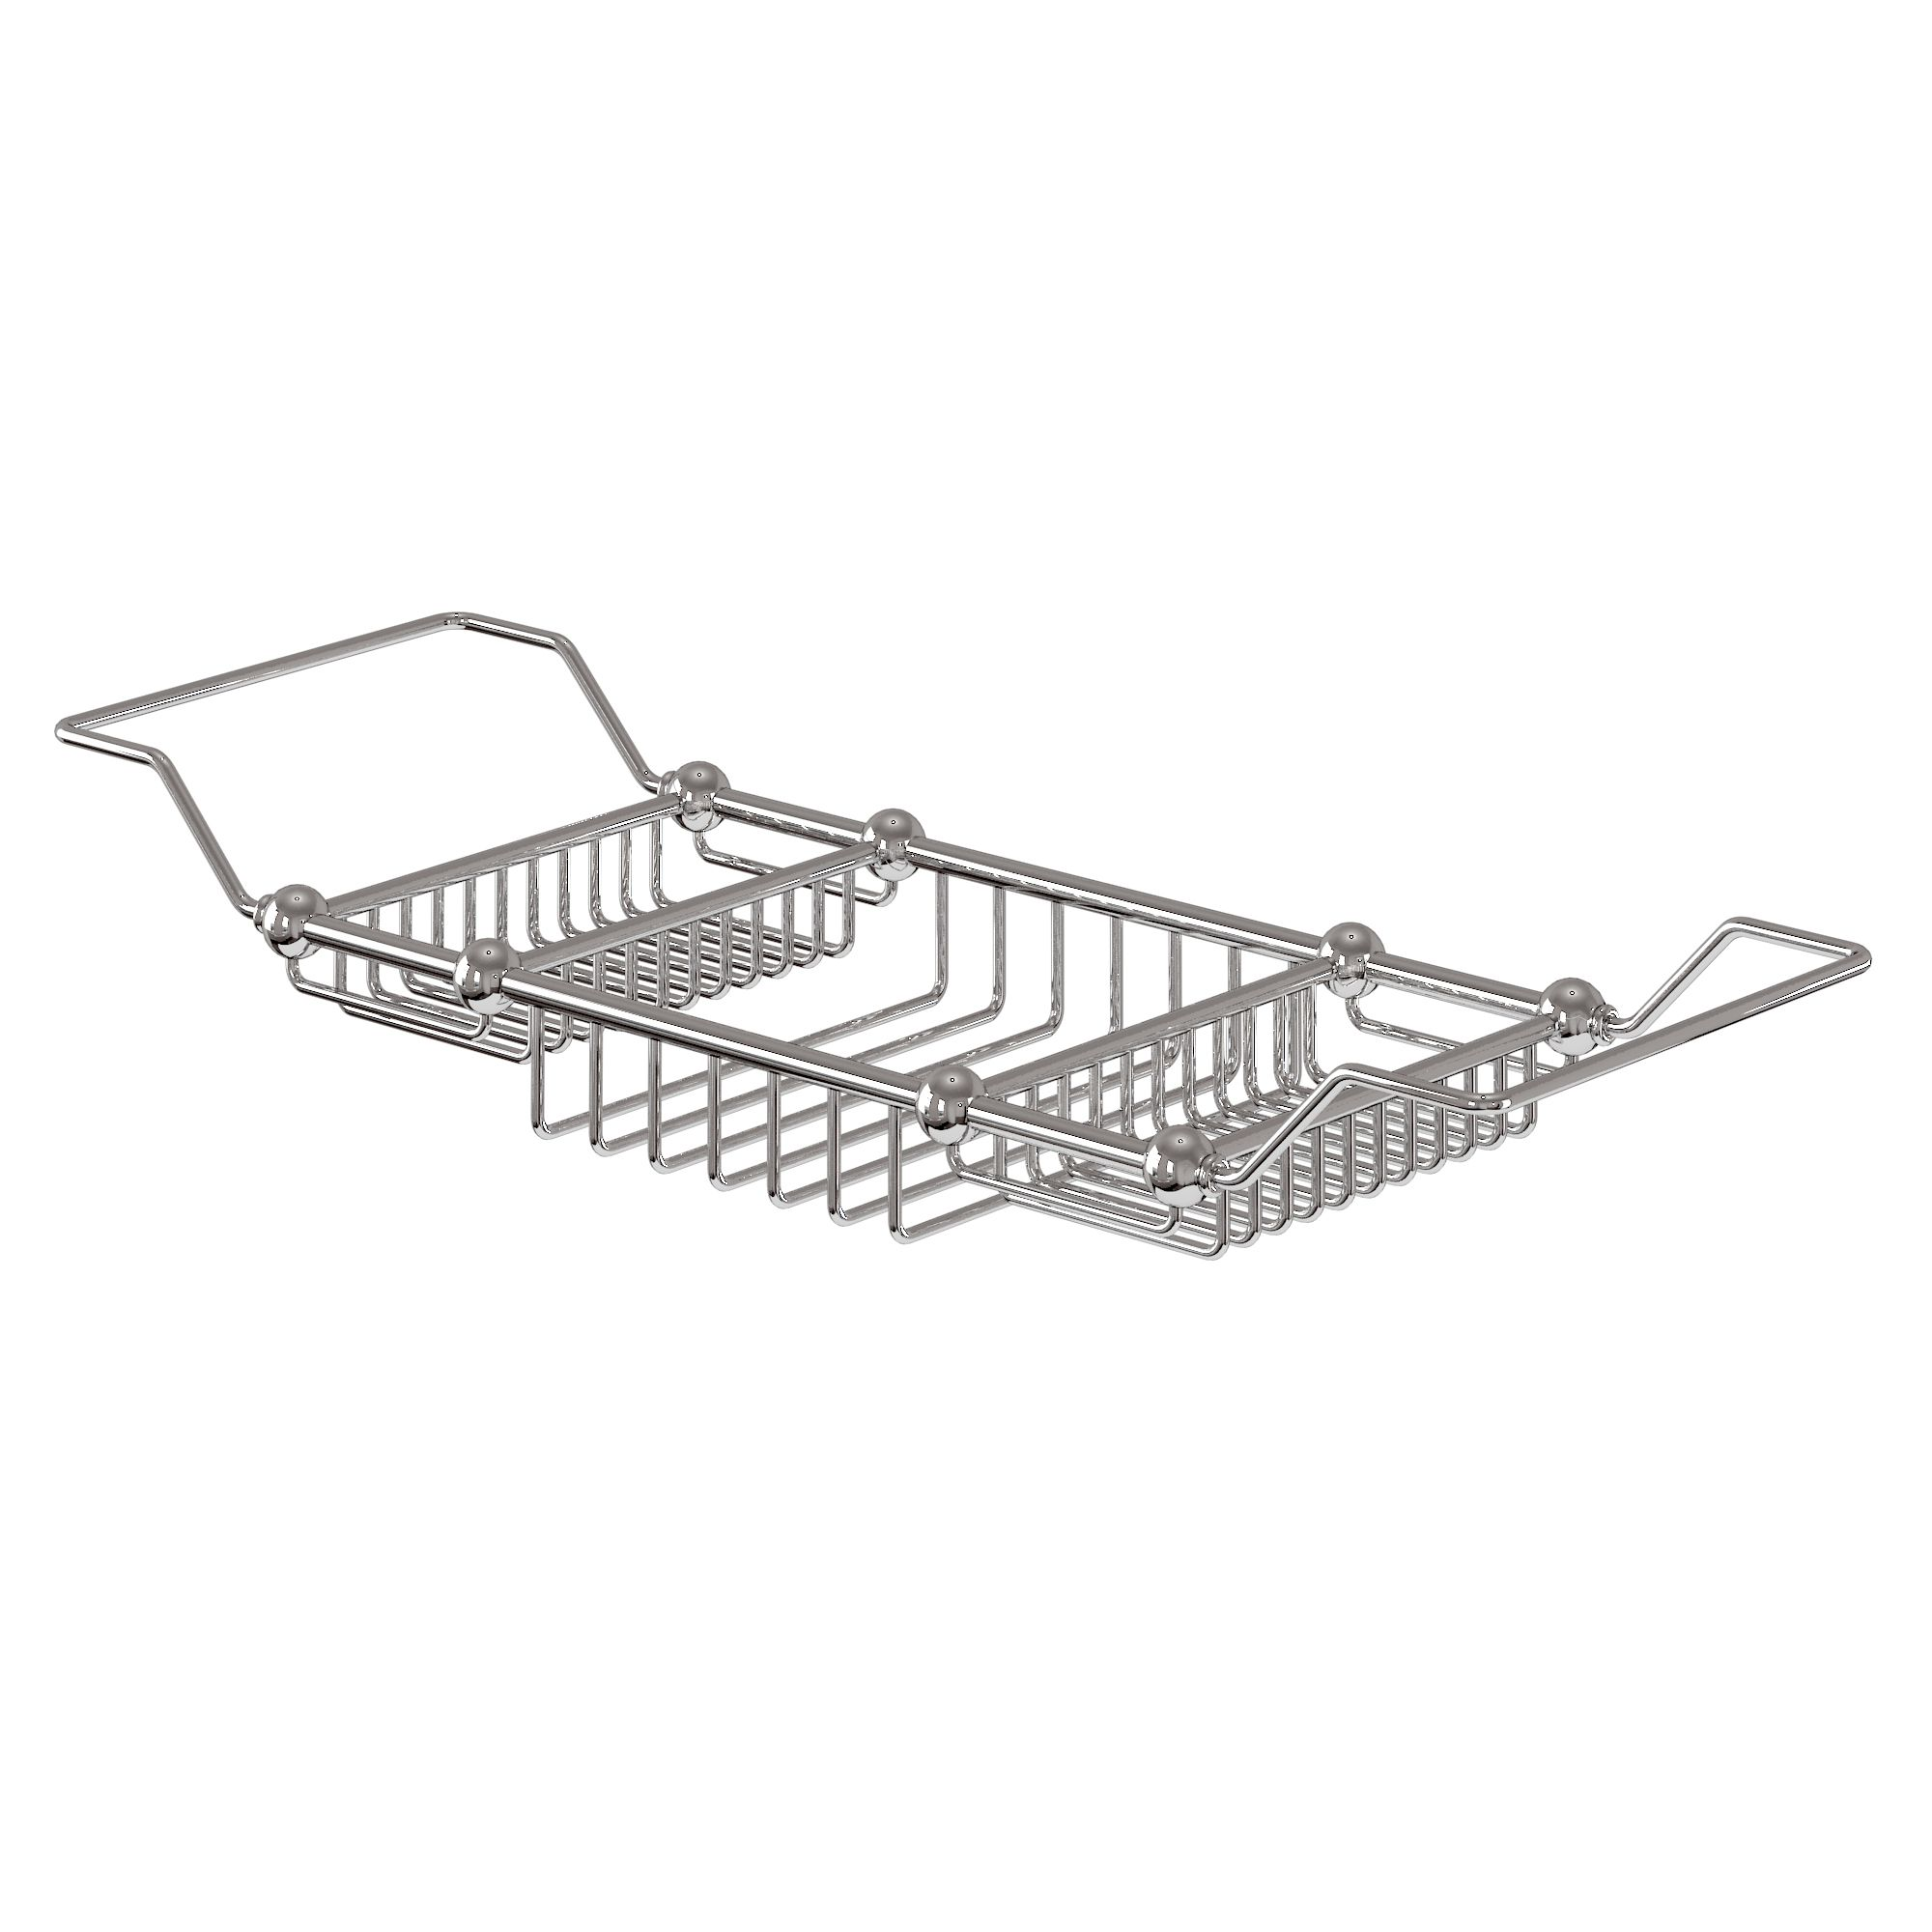 Bathroom Accessories | Burlington bath rack - Chrome | Calamansac EW ...